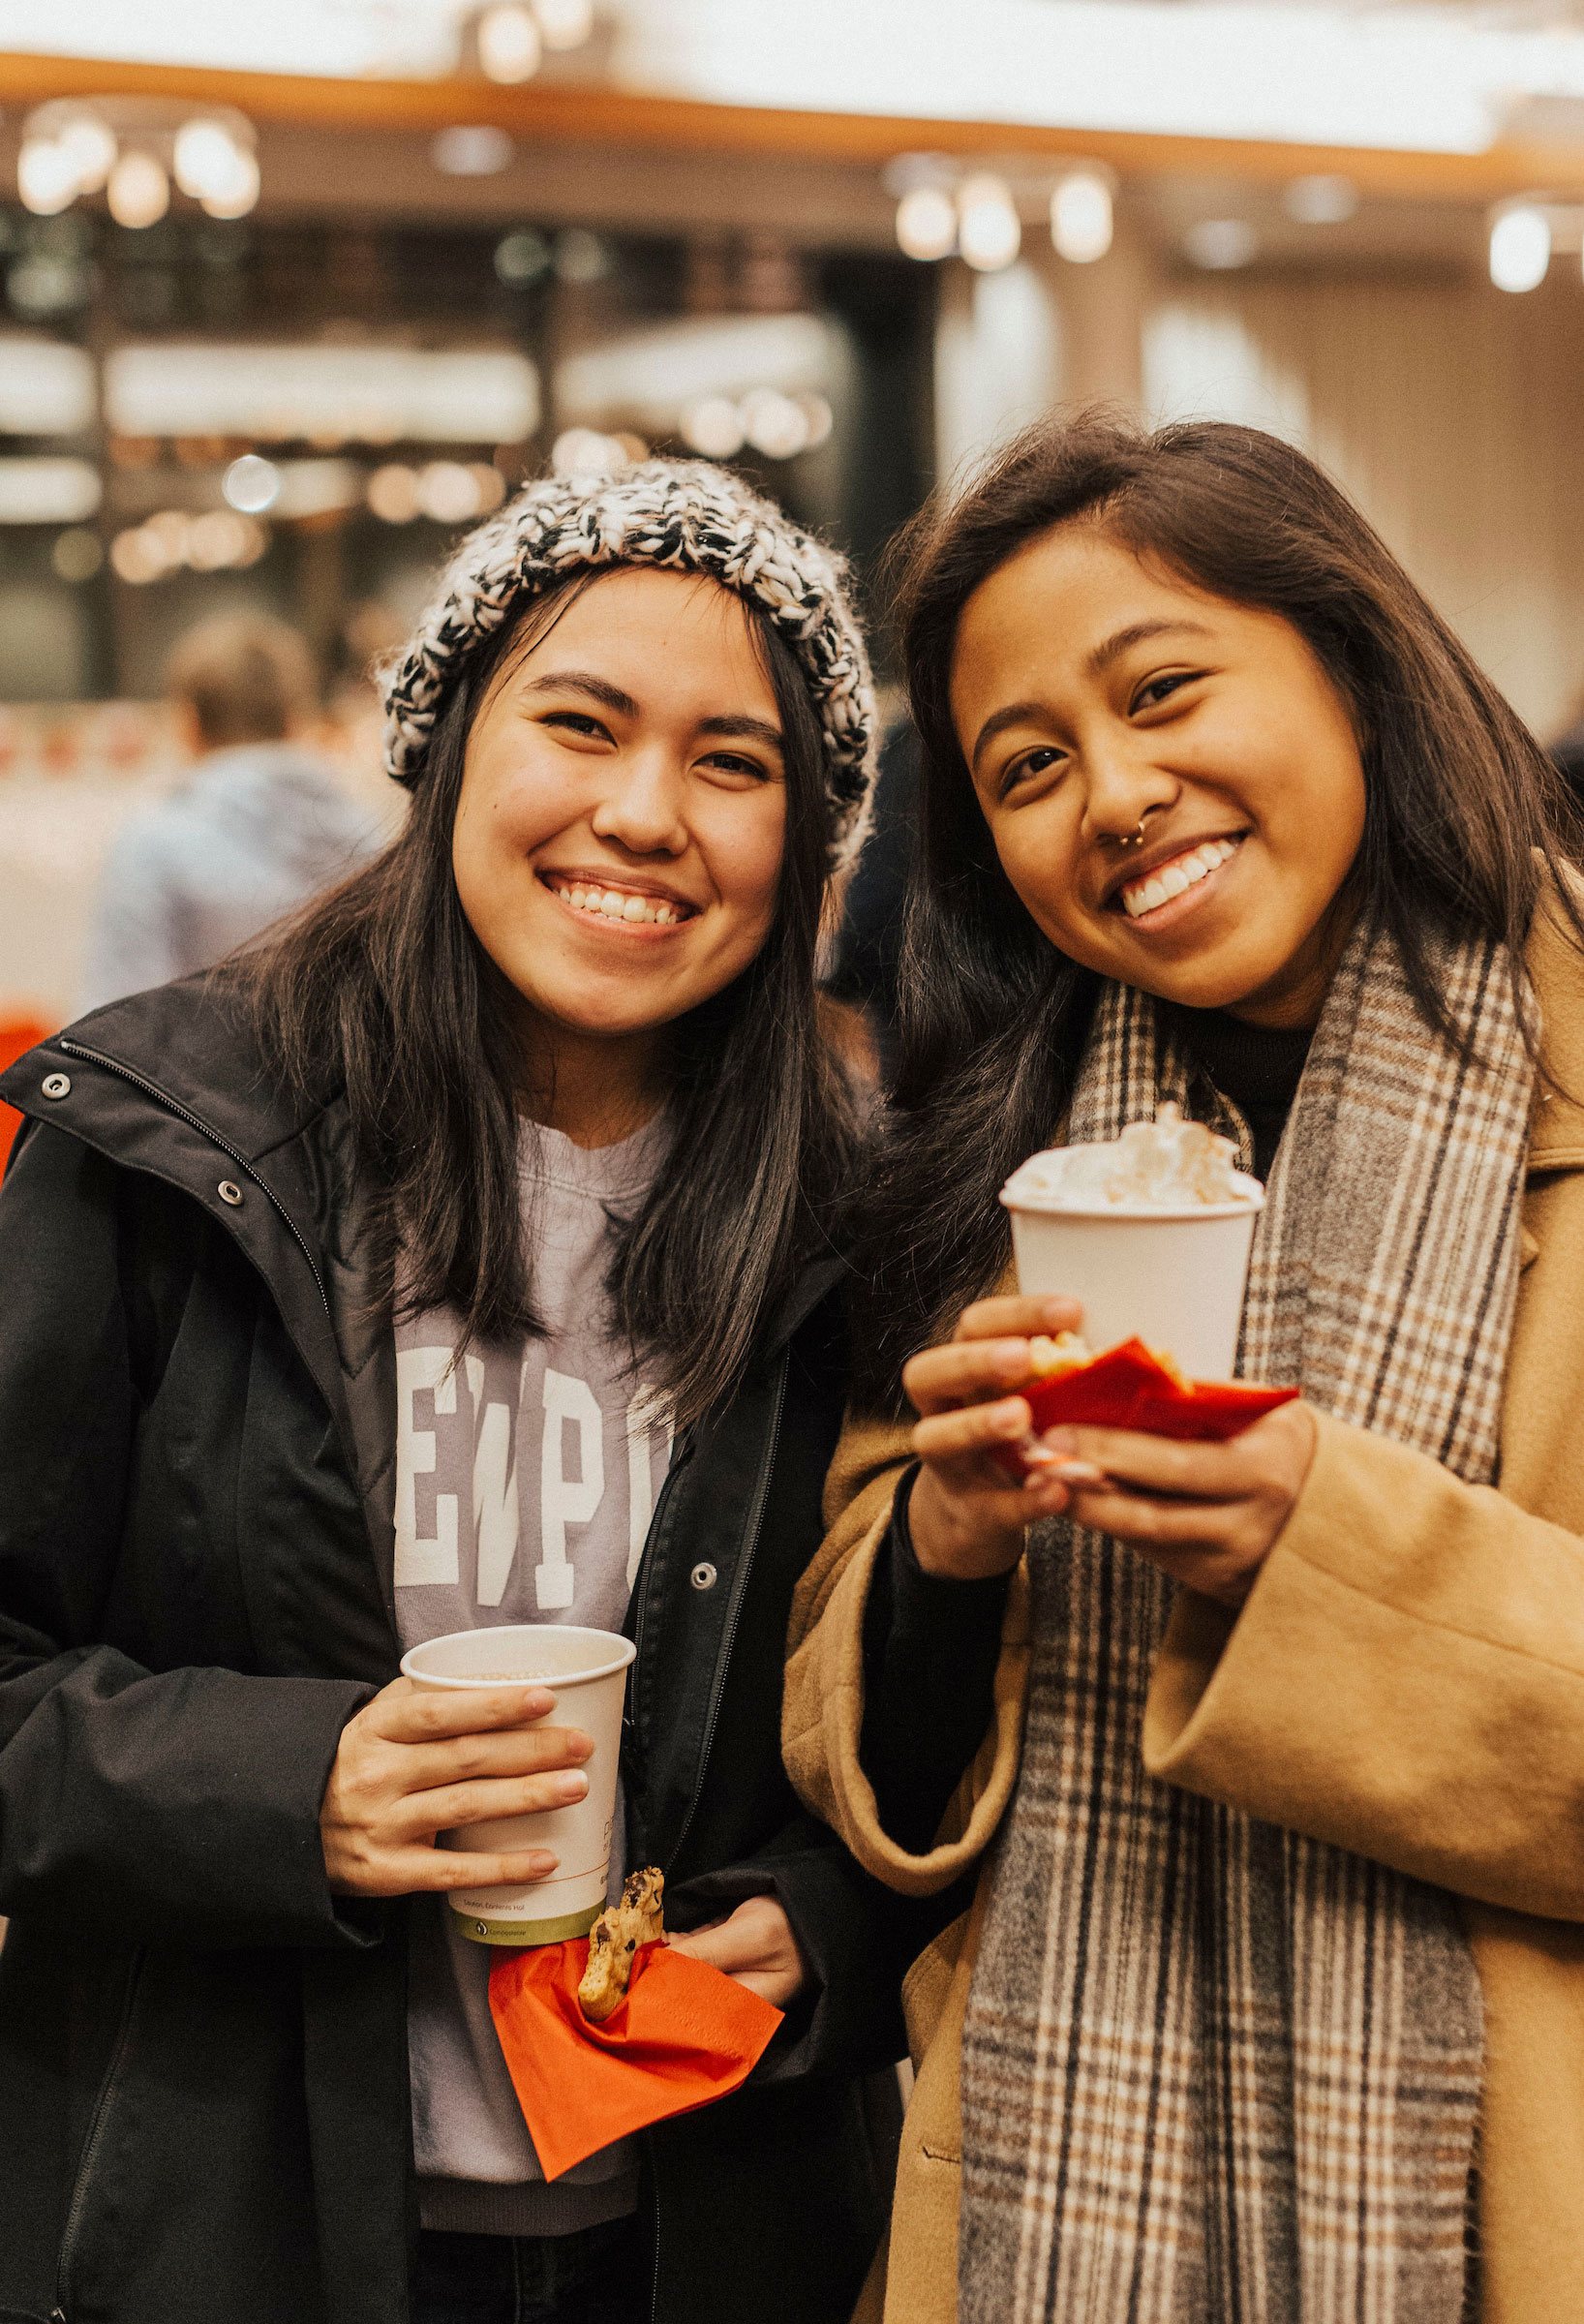 two students smile holding warm festive beverages